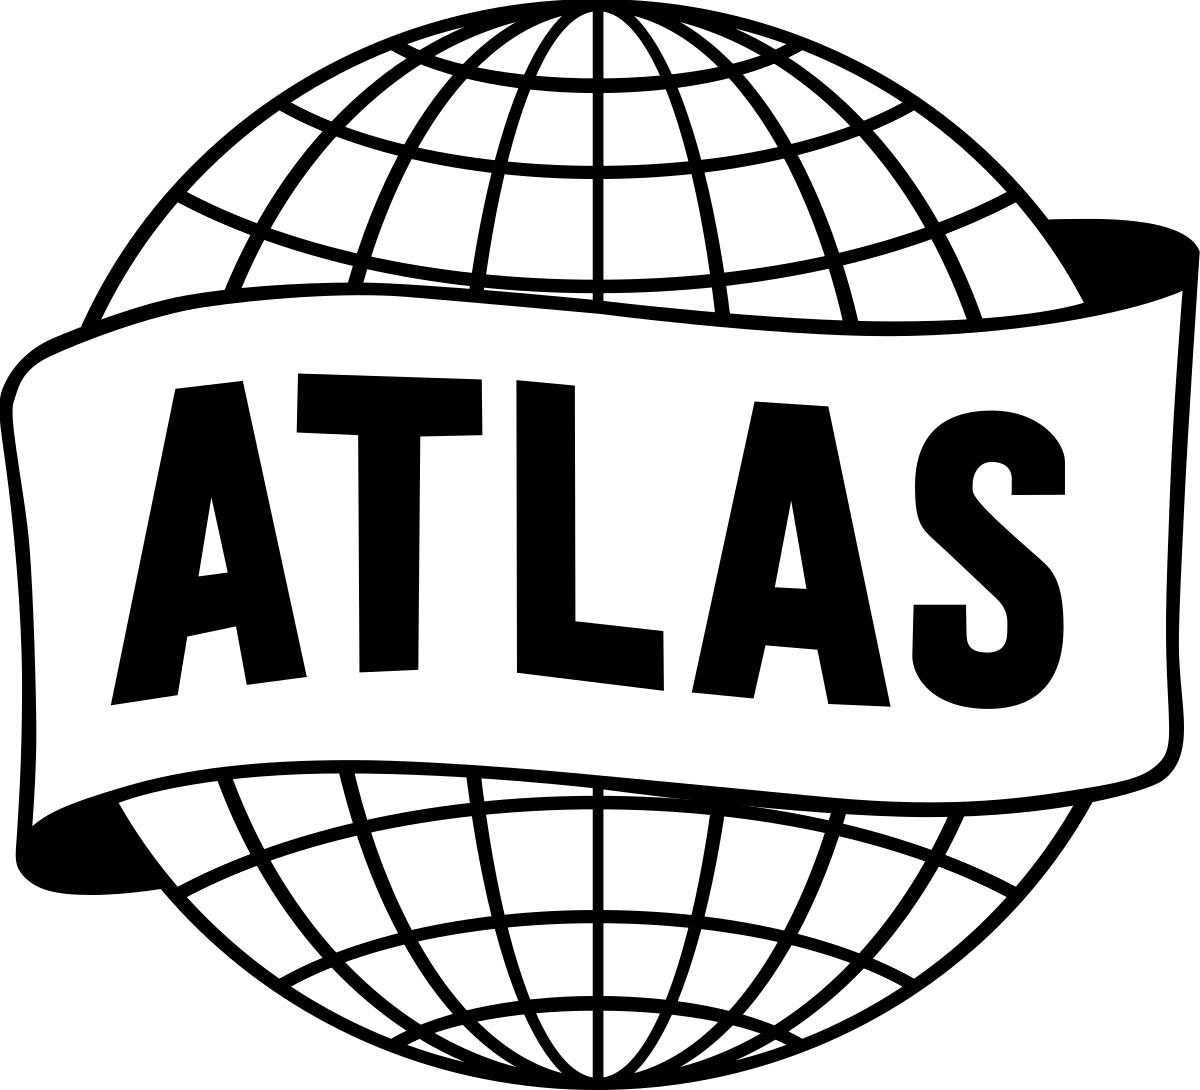 Atlas comics s wikipedia. Whip clipart comic